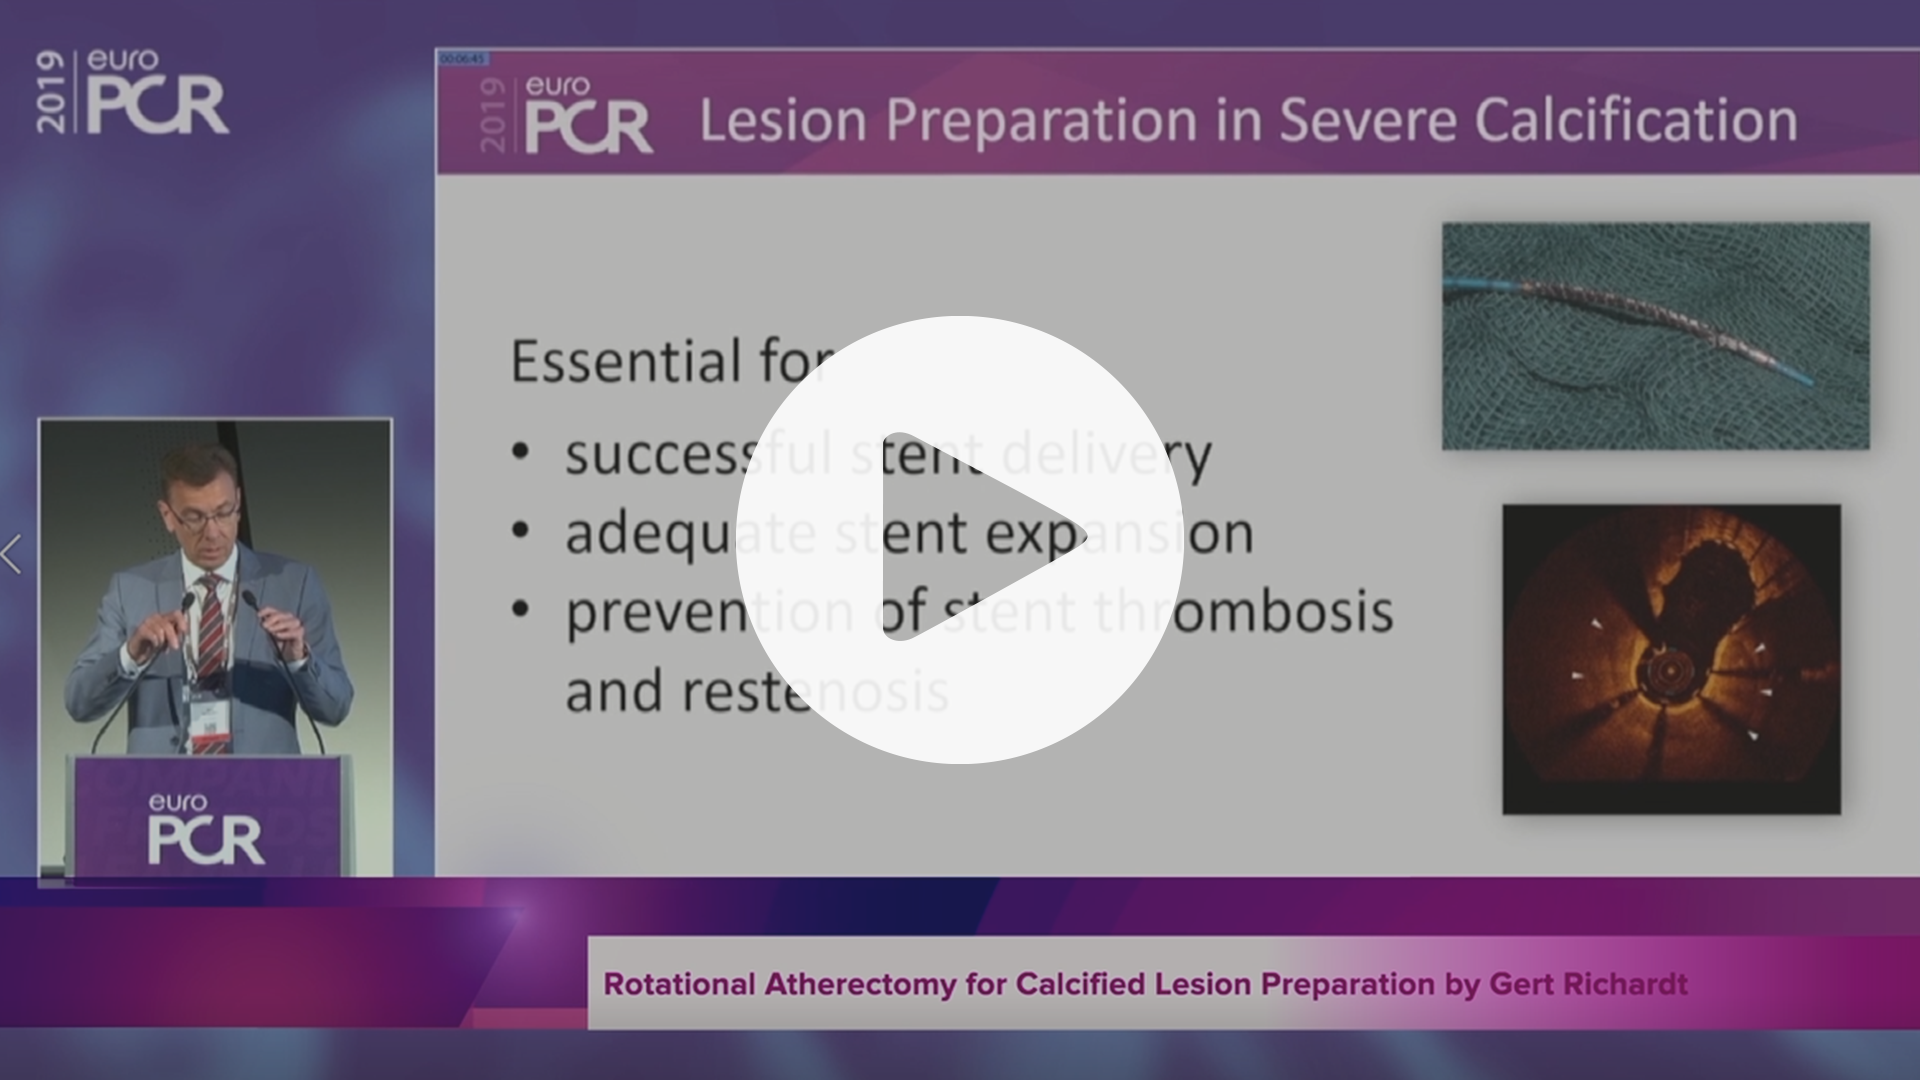 SYNTAX II Rotational Atherectomy for Calcified Lesion Preparation by Gert Richardt, VIdeo